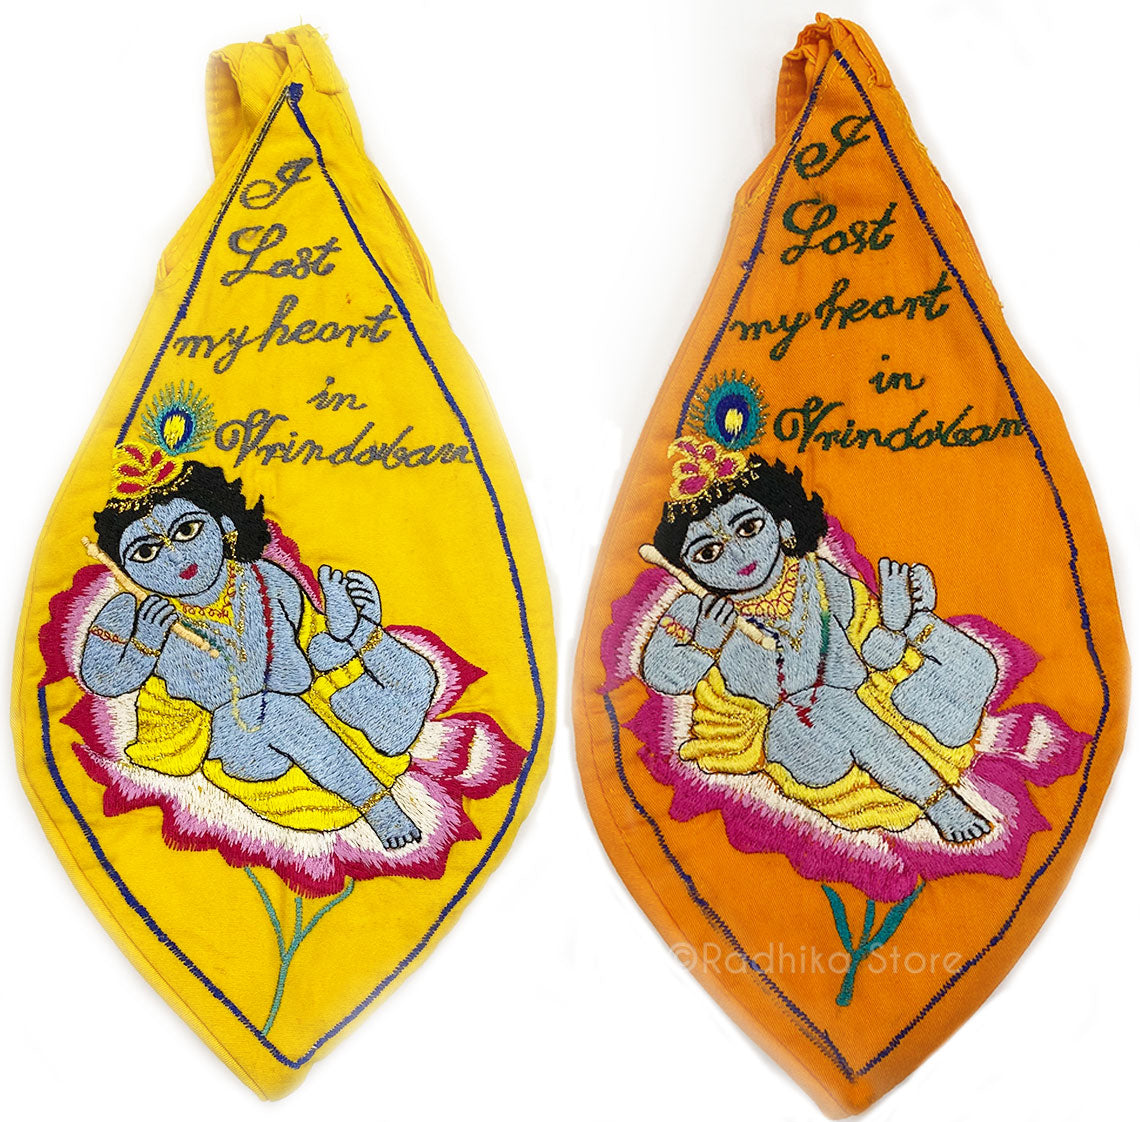 I lost My Heart In Vrindavan - Baby Krishna - Bead Bags